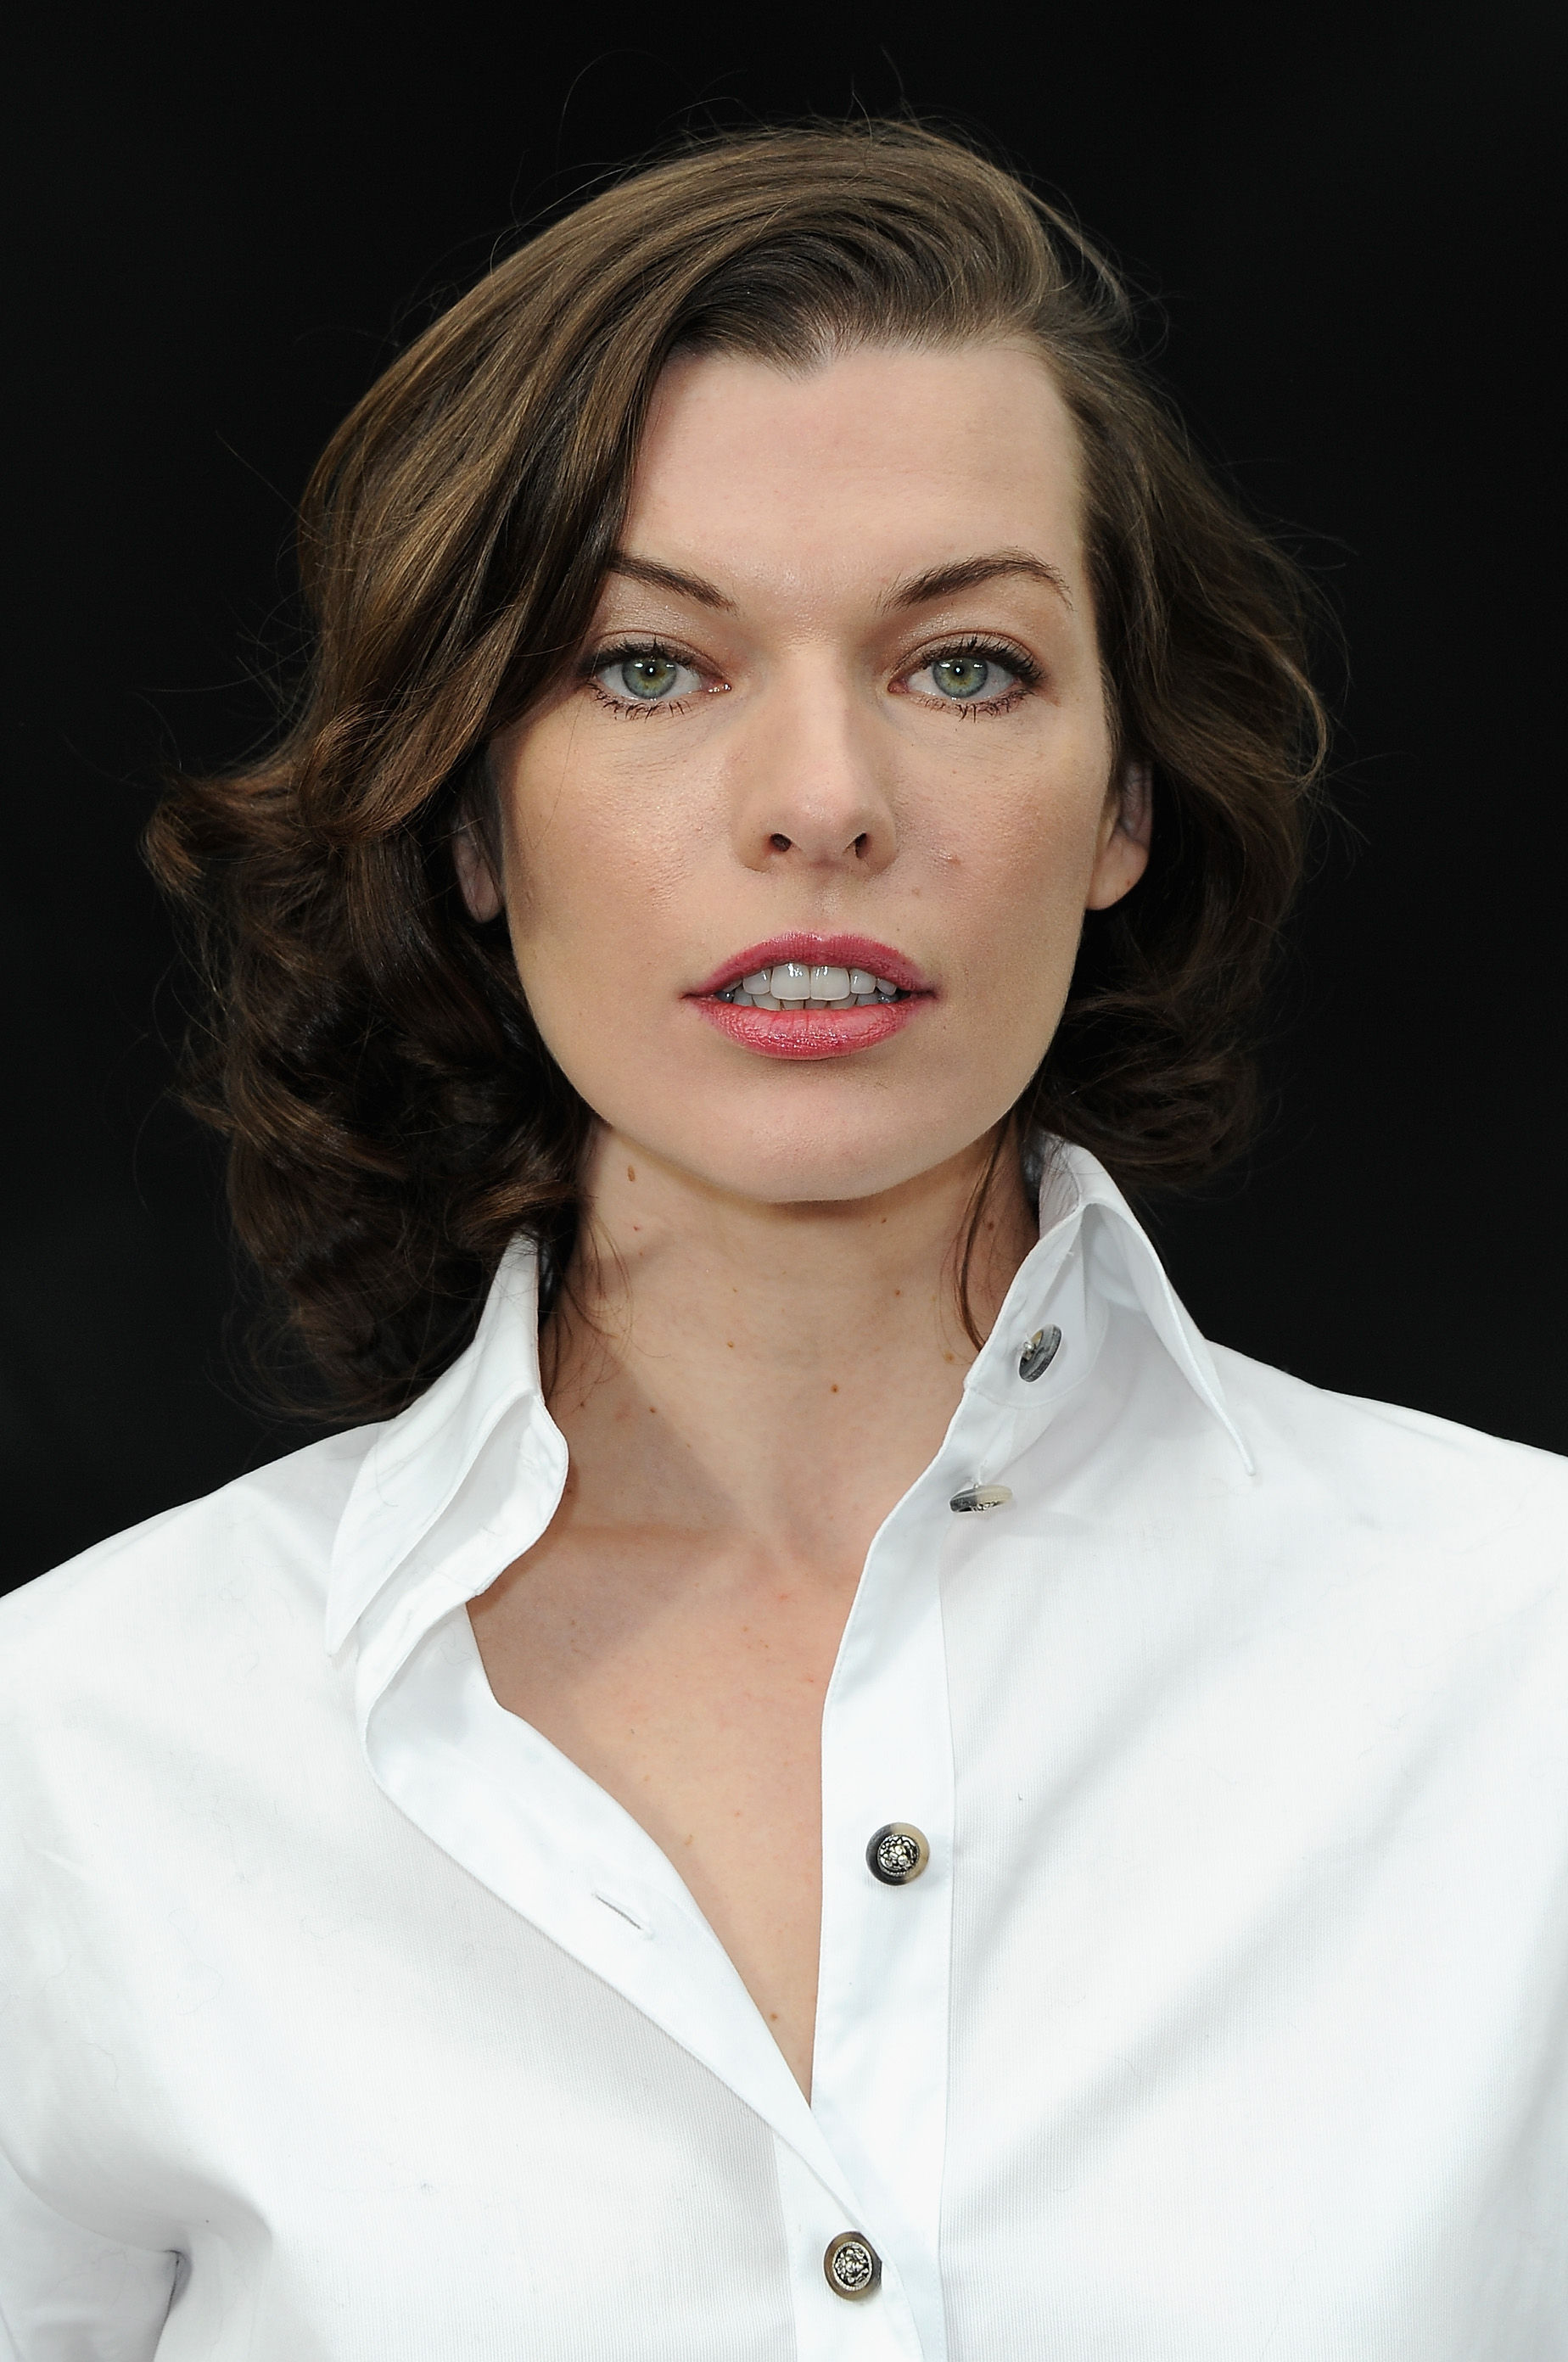 Milla Jovovich Wallpapers Images Photos Pictures Backgrounds Milla Jovovich